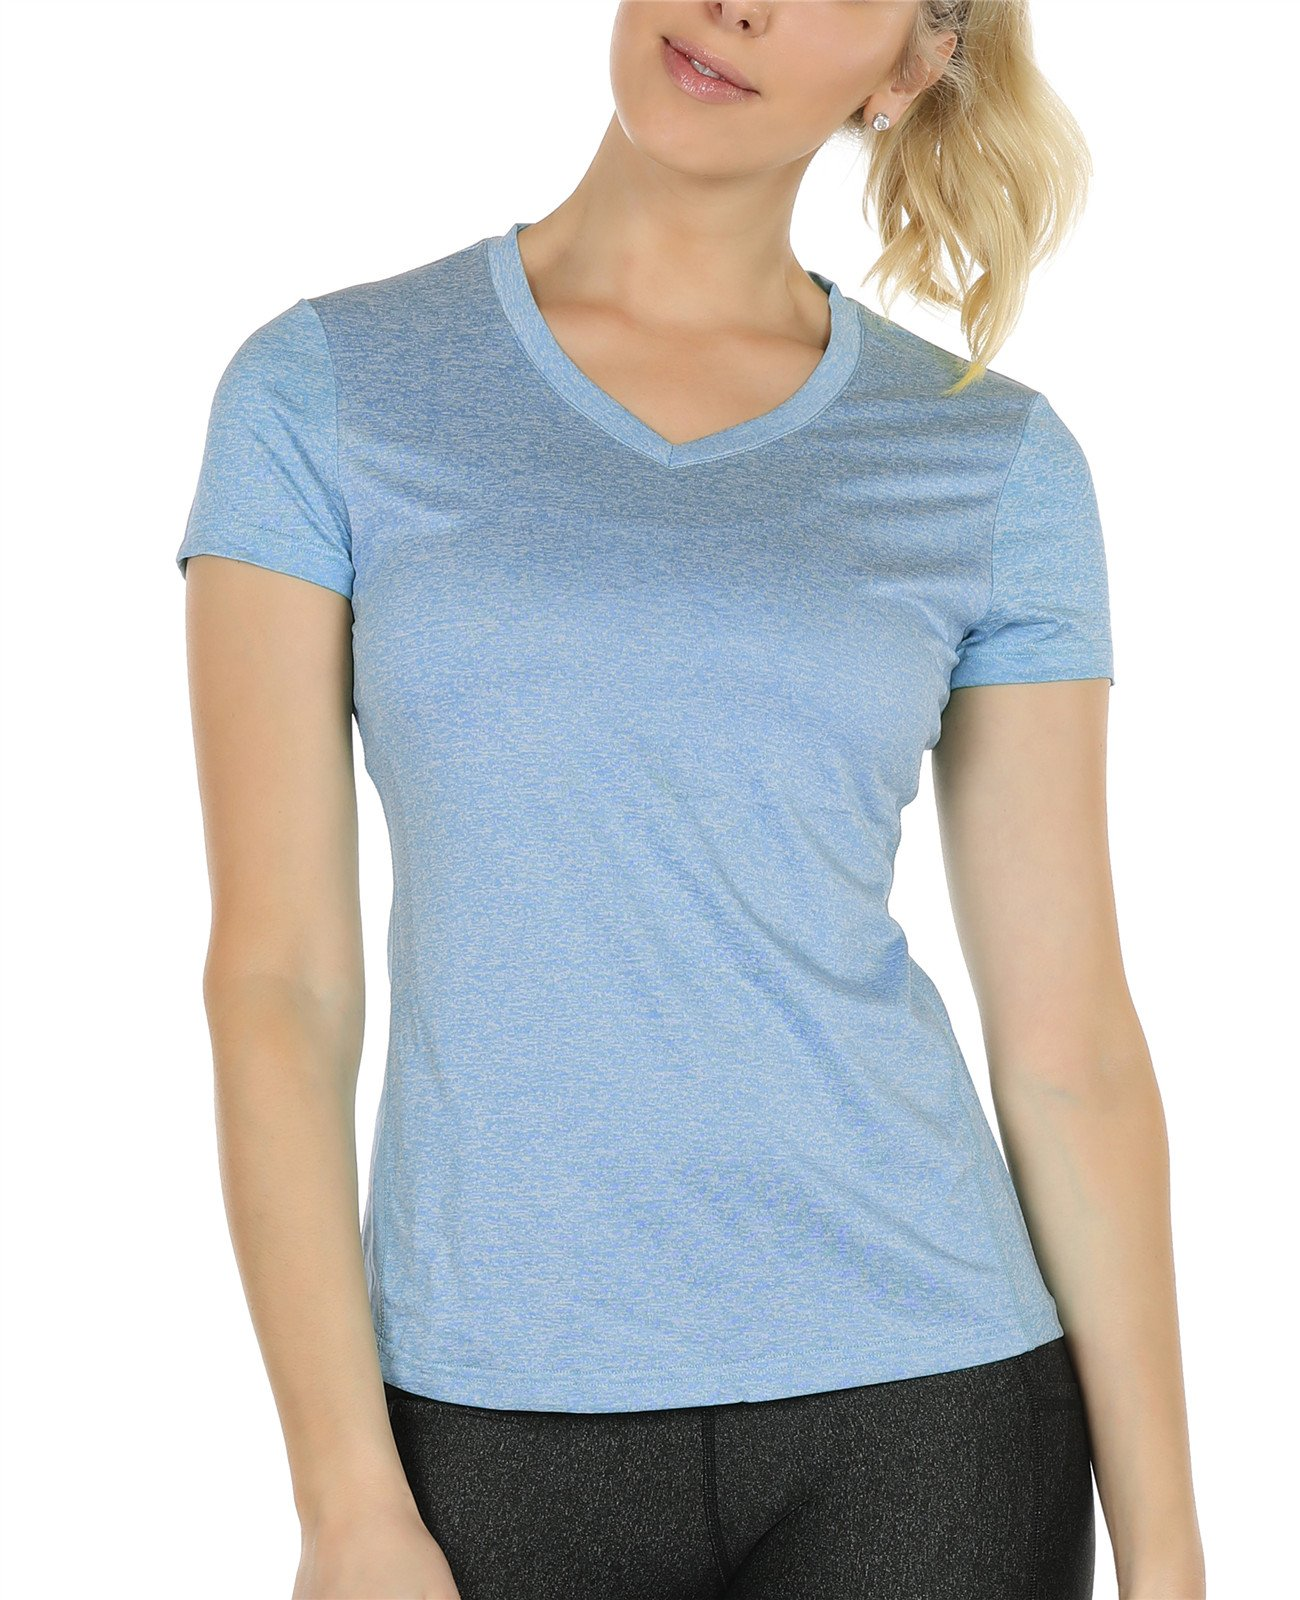 icyZone Workout Shirts Yoga Tops Activewear V-Neck T-shirts for Women Running Fitness Sports Short Sleeve Tees (L, Blue Heather)